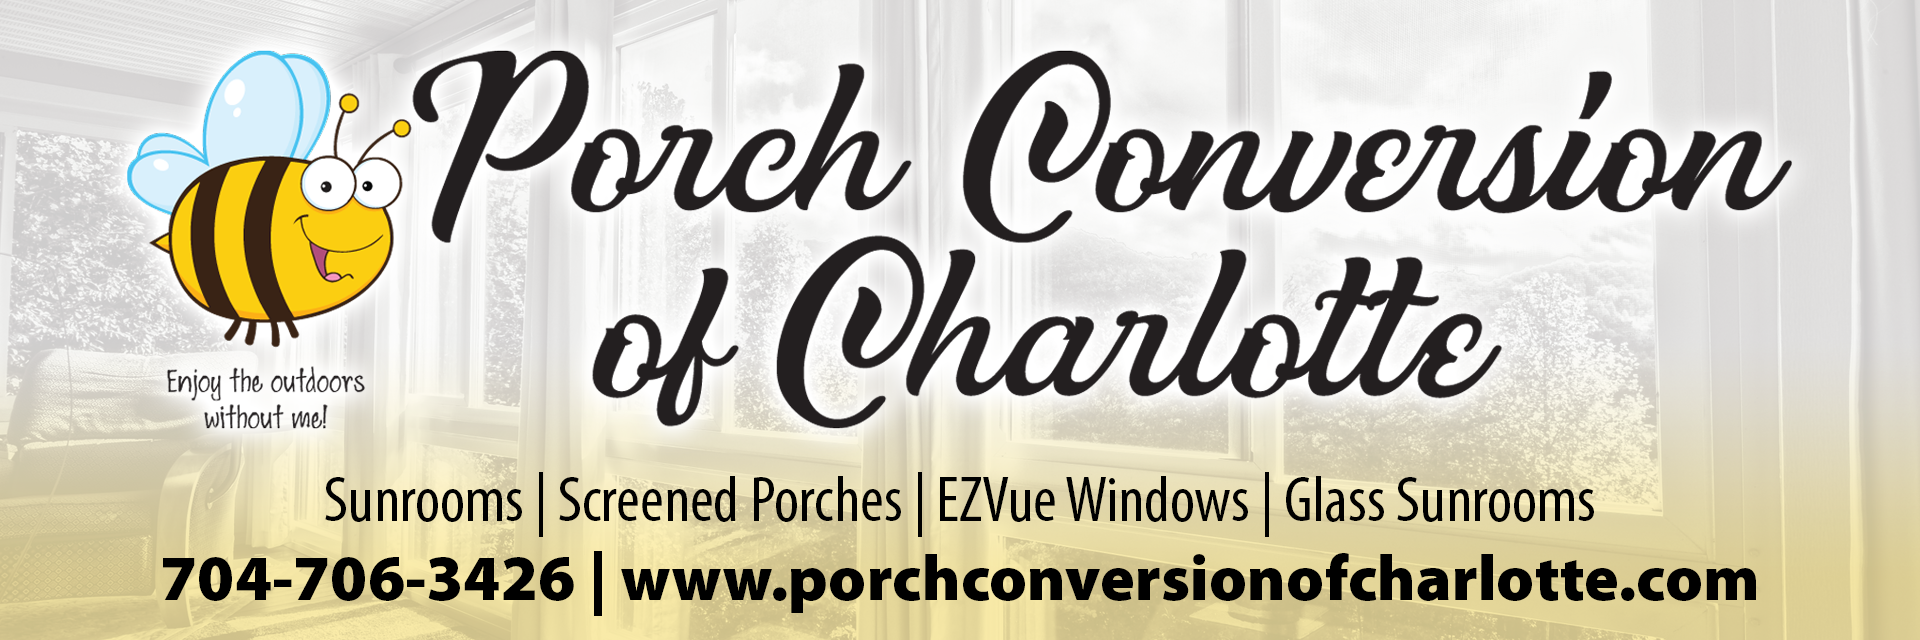 image shows Porch Conversion of Charlotte logo | Sunrooms | Patio Decks |Charlotte NC